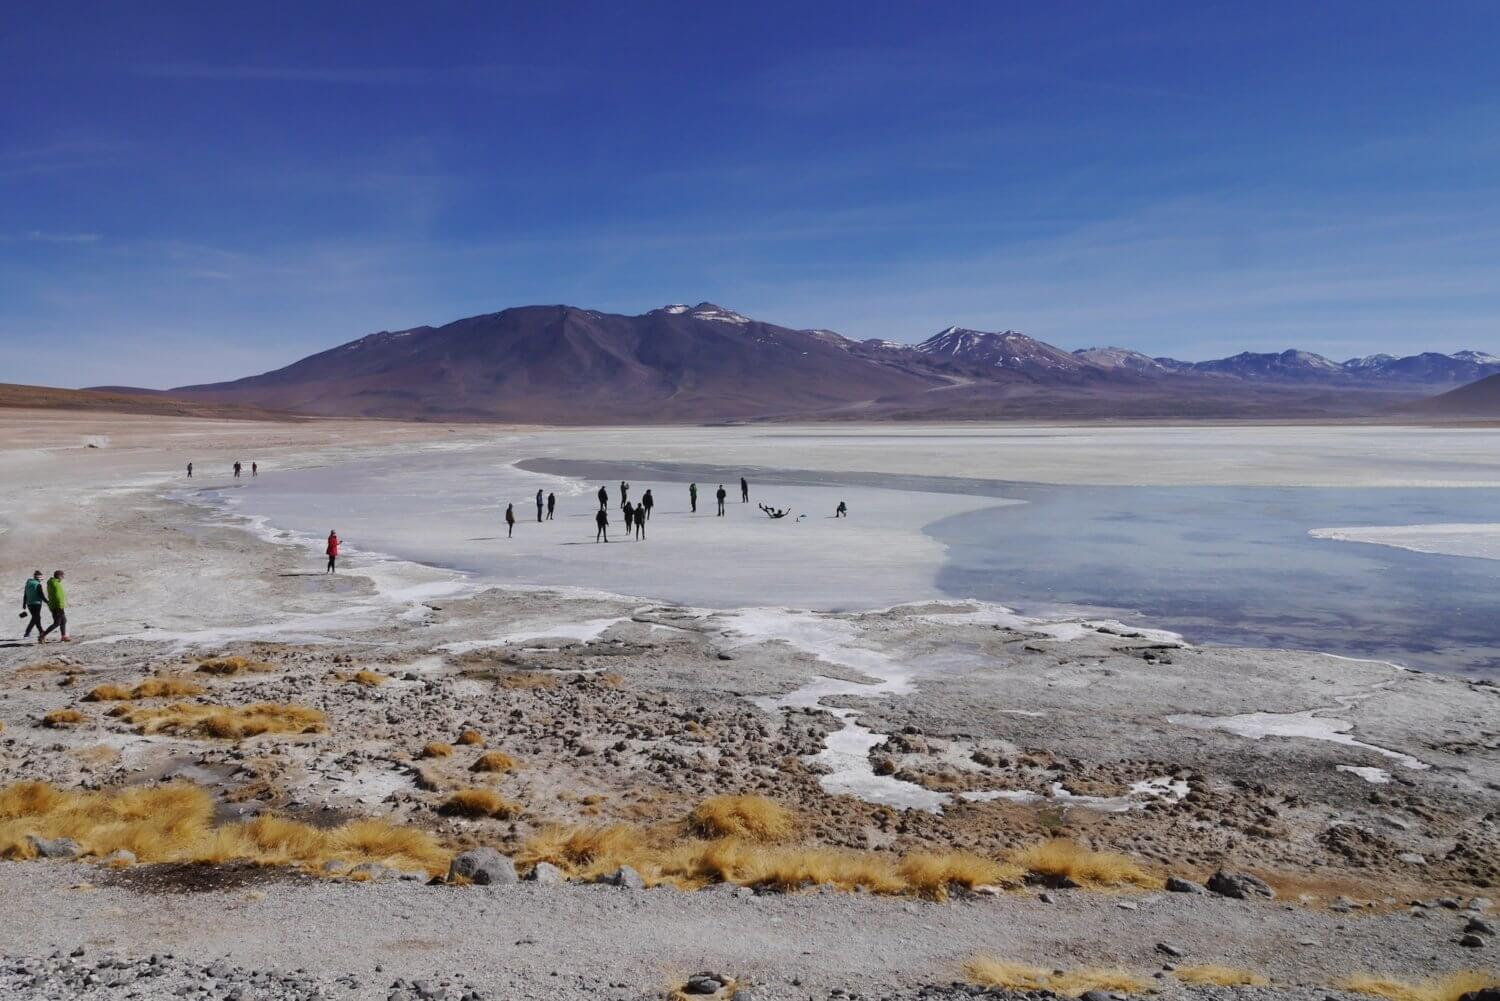 bolivian altiplano, frozen lakes of Bolivia, stunning Bolivian landscapes